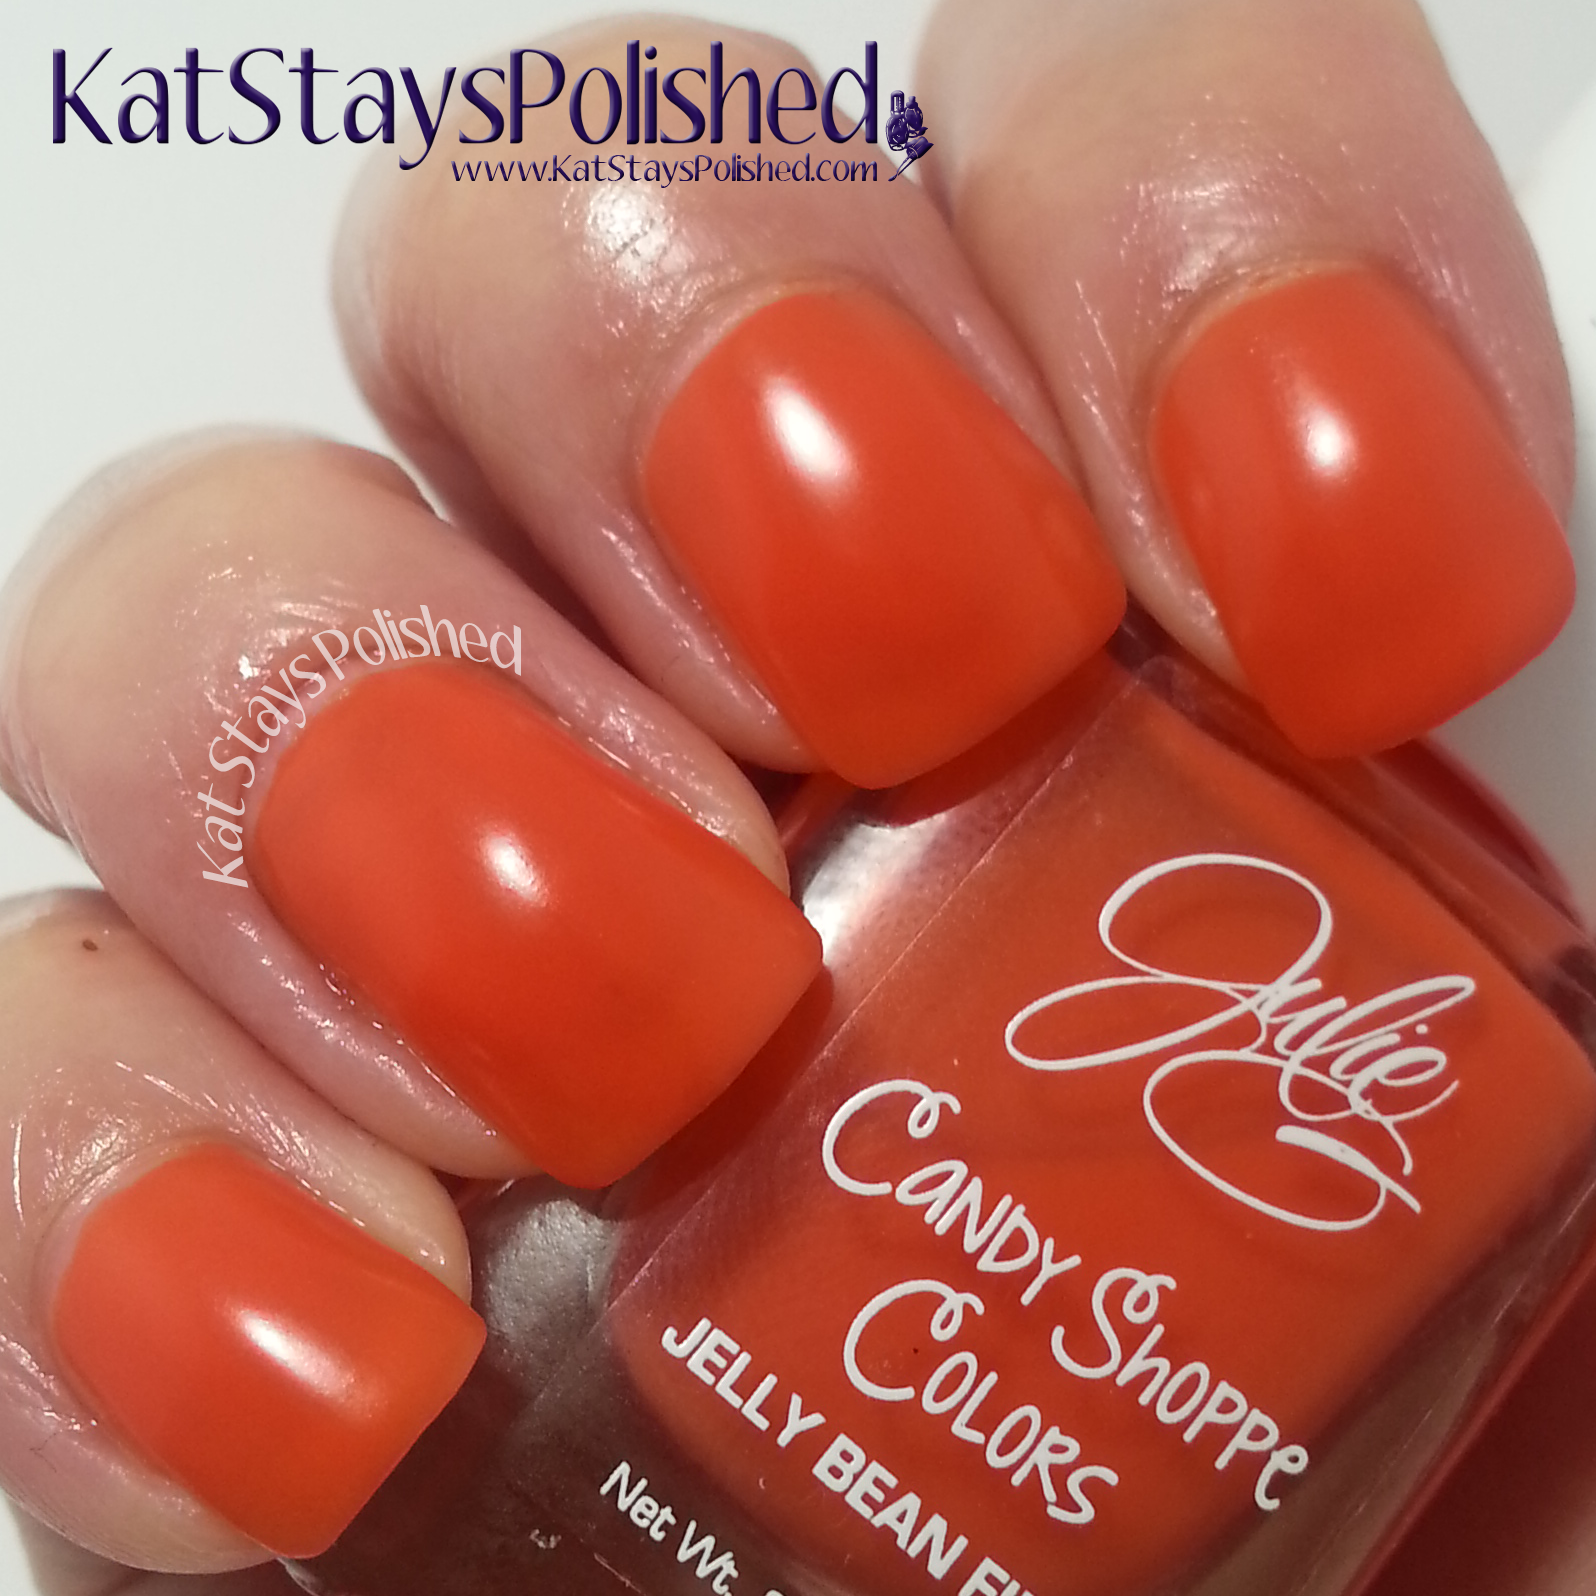 JulieG Candy Shoppe Colors - Candy Shop | Kat Stays Polished